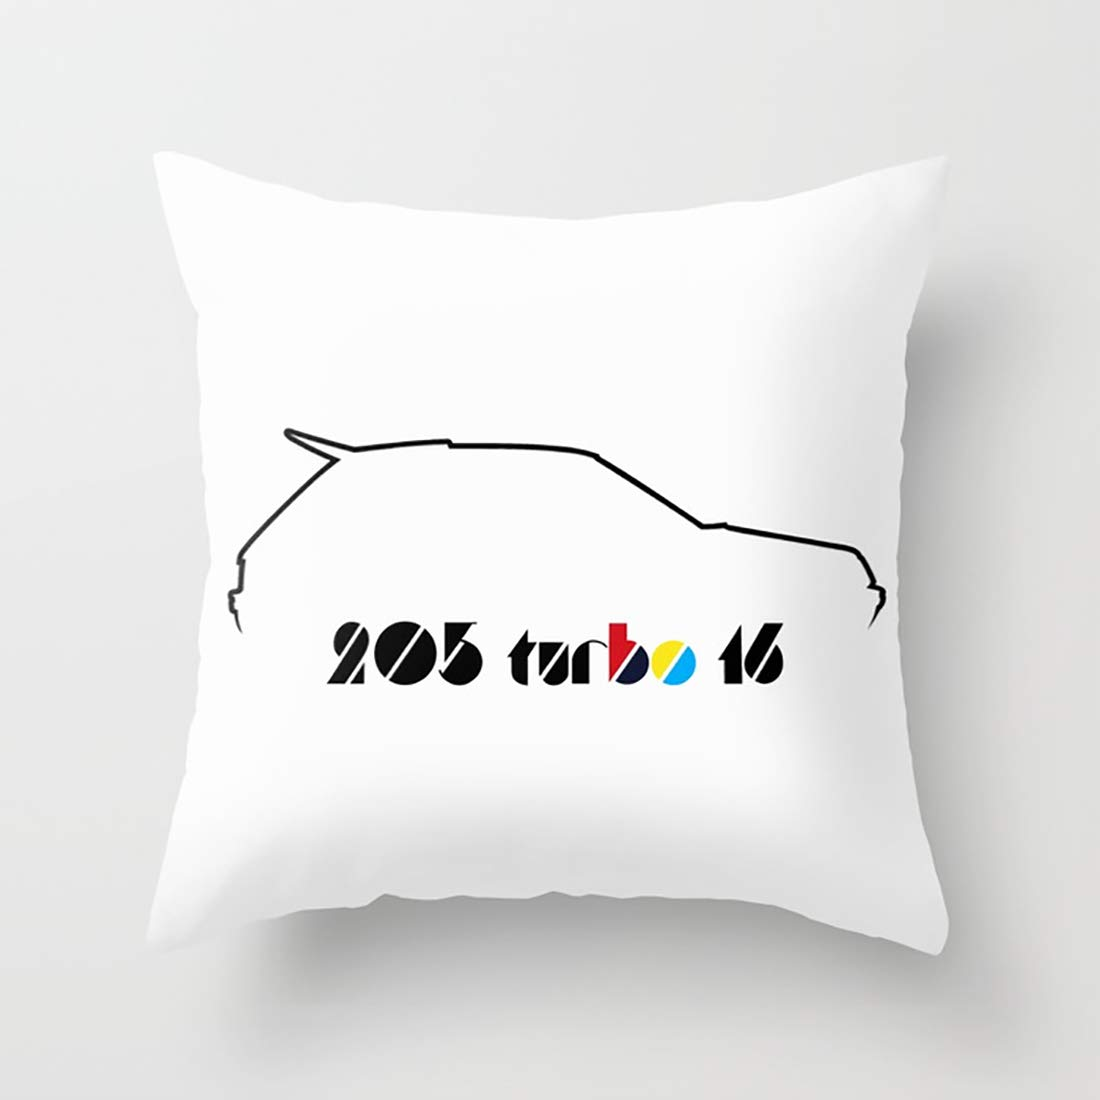 Amazon.com: Aminayo Pillow Cover Rally Legends - Peugeot 205 T16 [Silhouette] Floral Cushion Cover Floral Printed Case 18 X 18 Pillowcase Multicolor: Home & ...